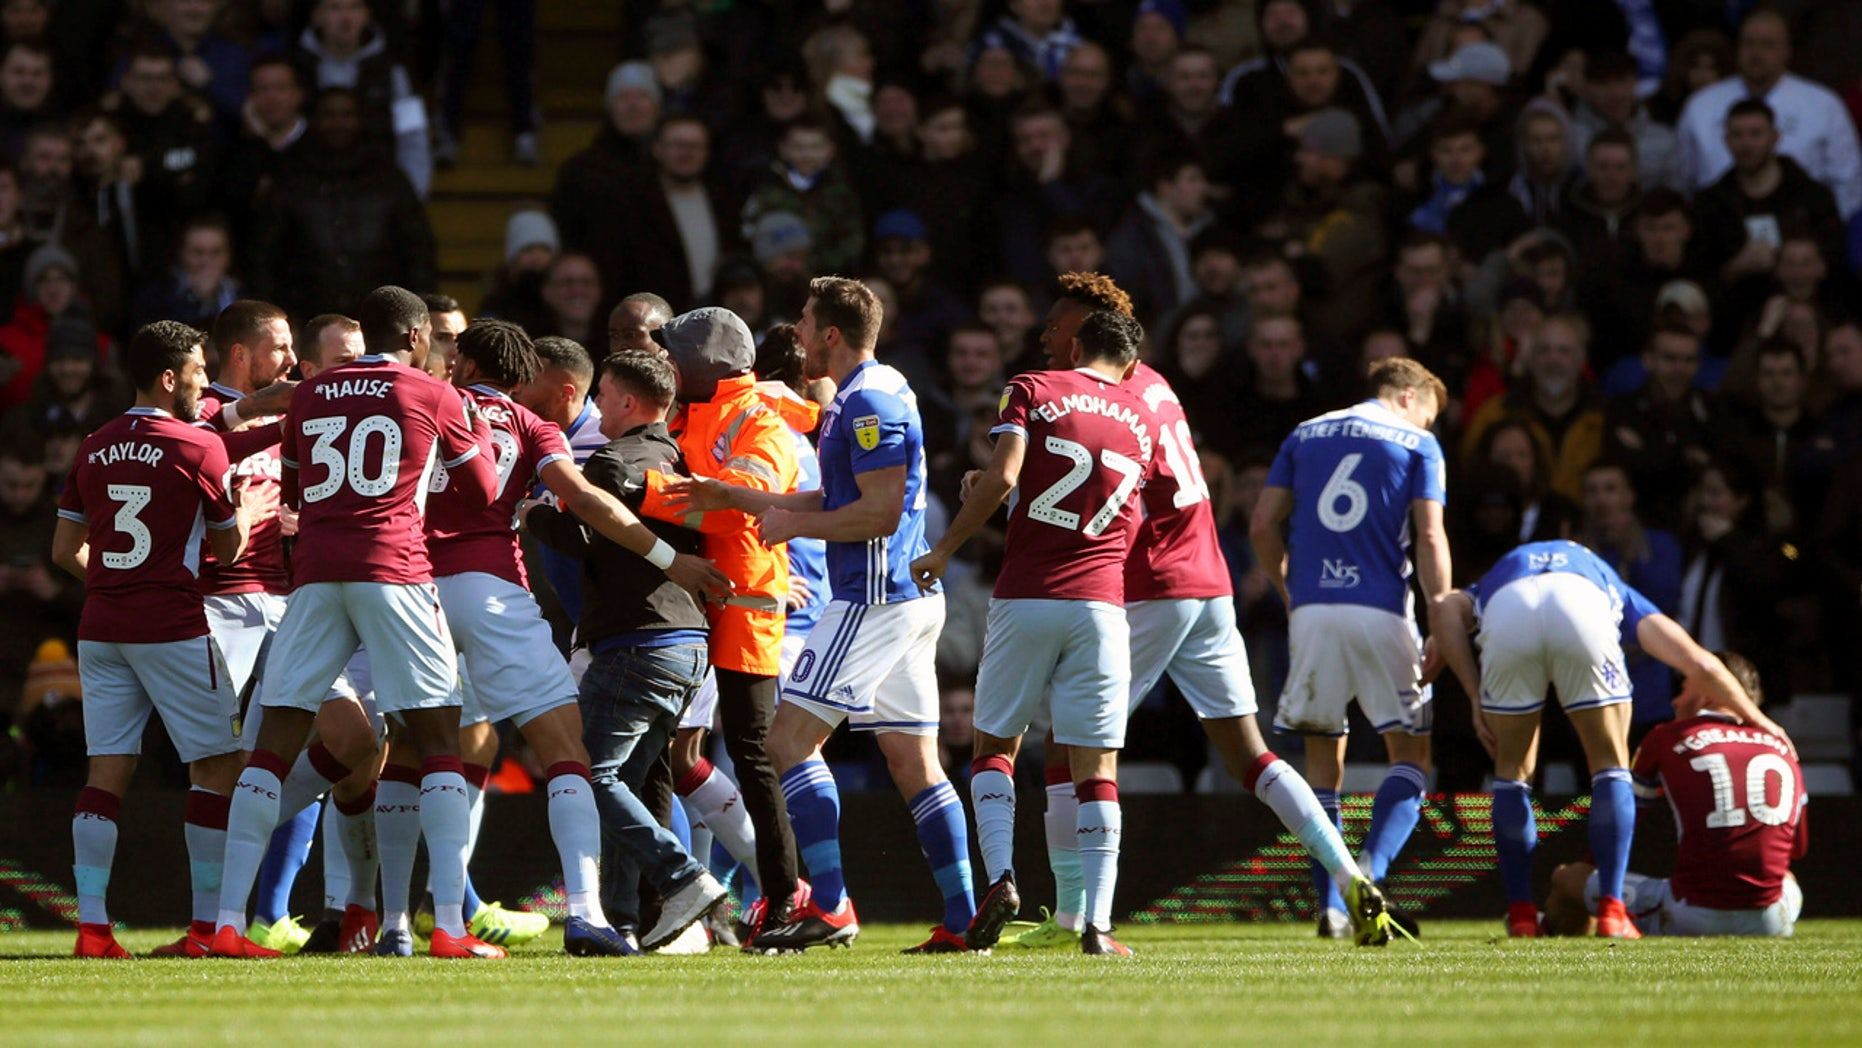 A fan was removed after attacking Aston Villa's Jack Grealish, right, on the pitch during the Sky Bet Championship soccer match at St Andrew's Trillion Trophy Stadium, Birmingham, England, on Sunday. (Nick Potts/PA via AP)